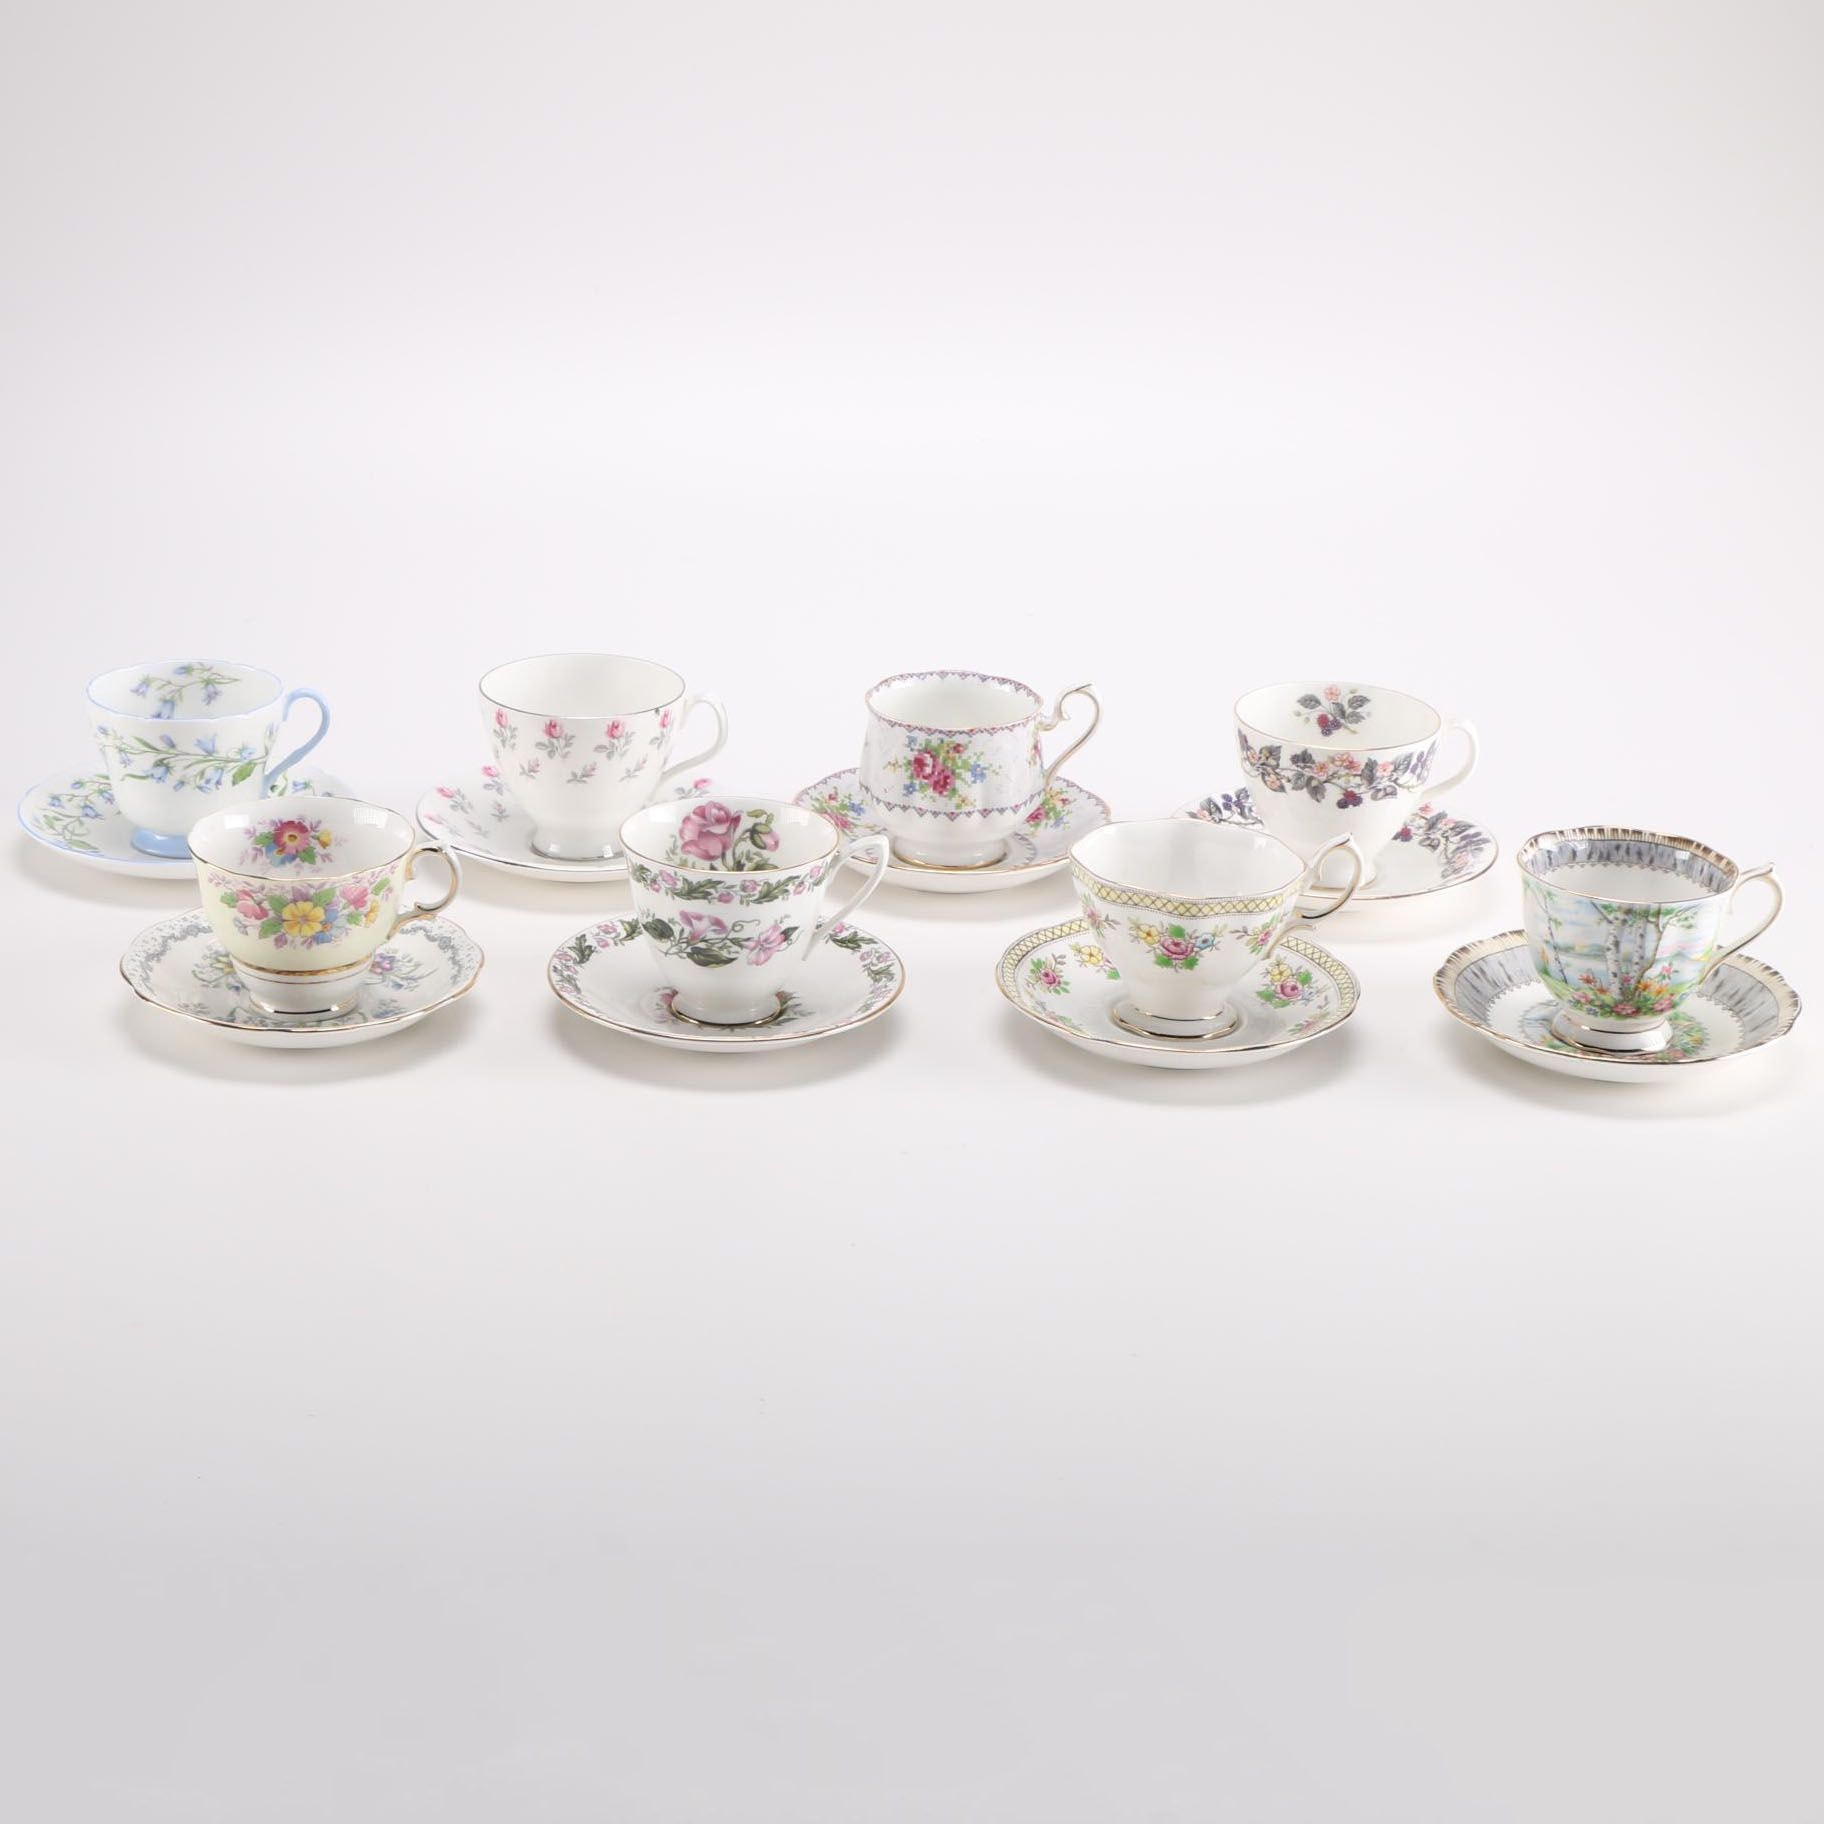 Assorted English Fine China Teacup and Saucer Sets